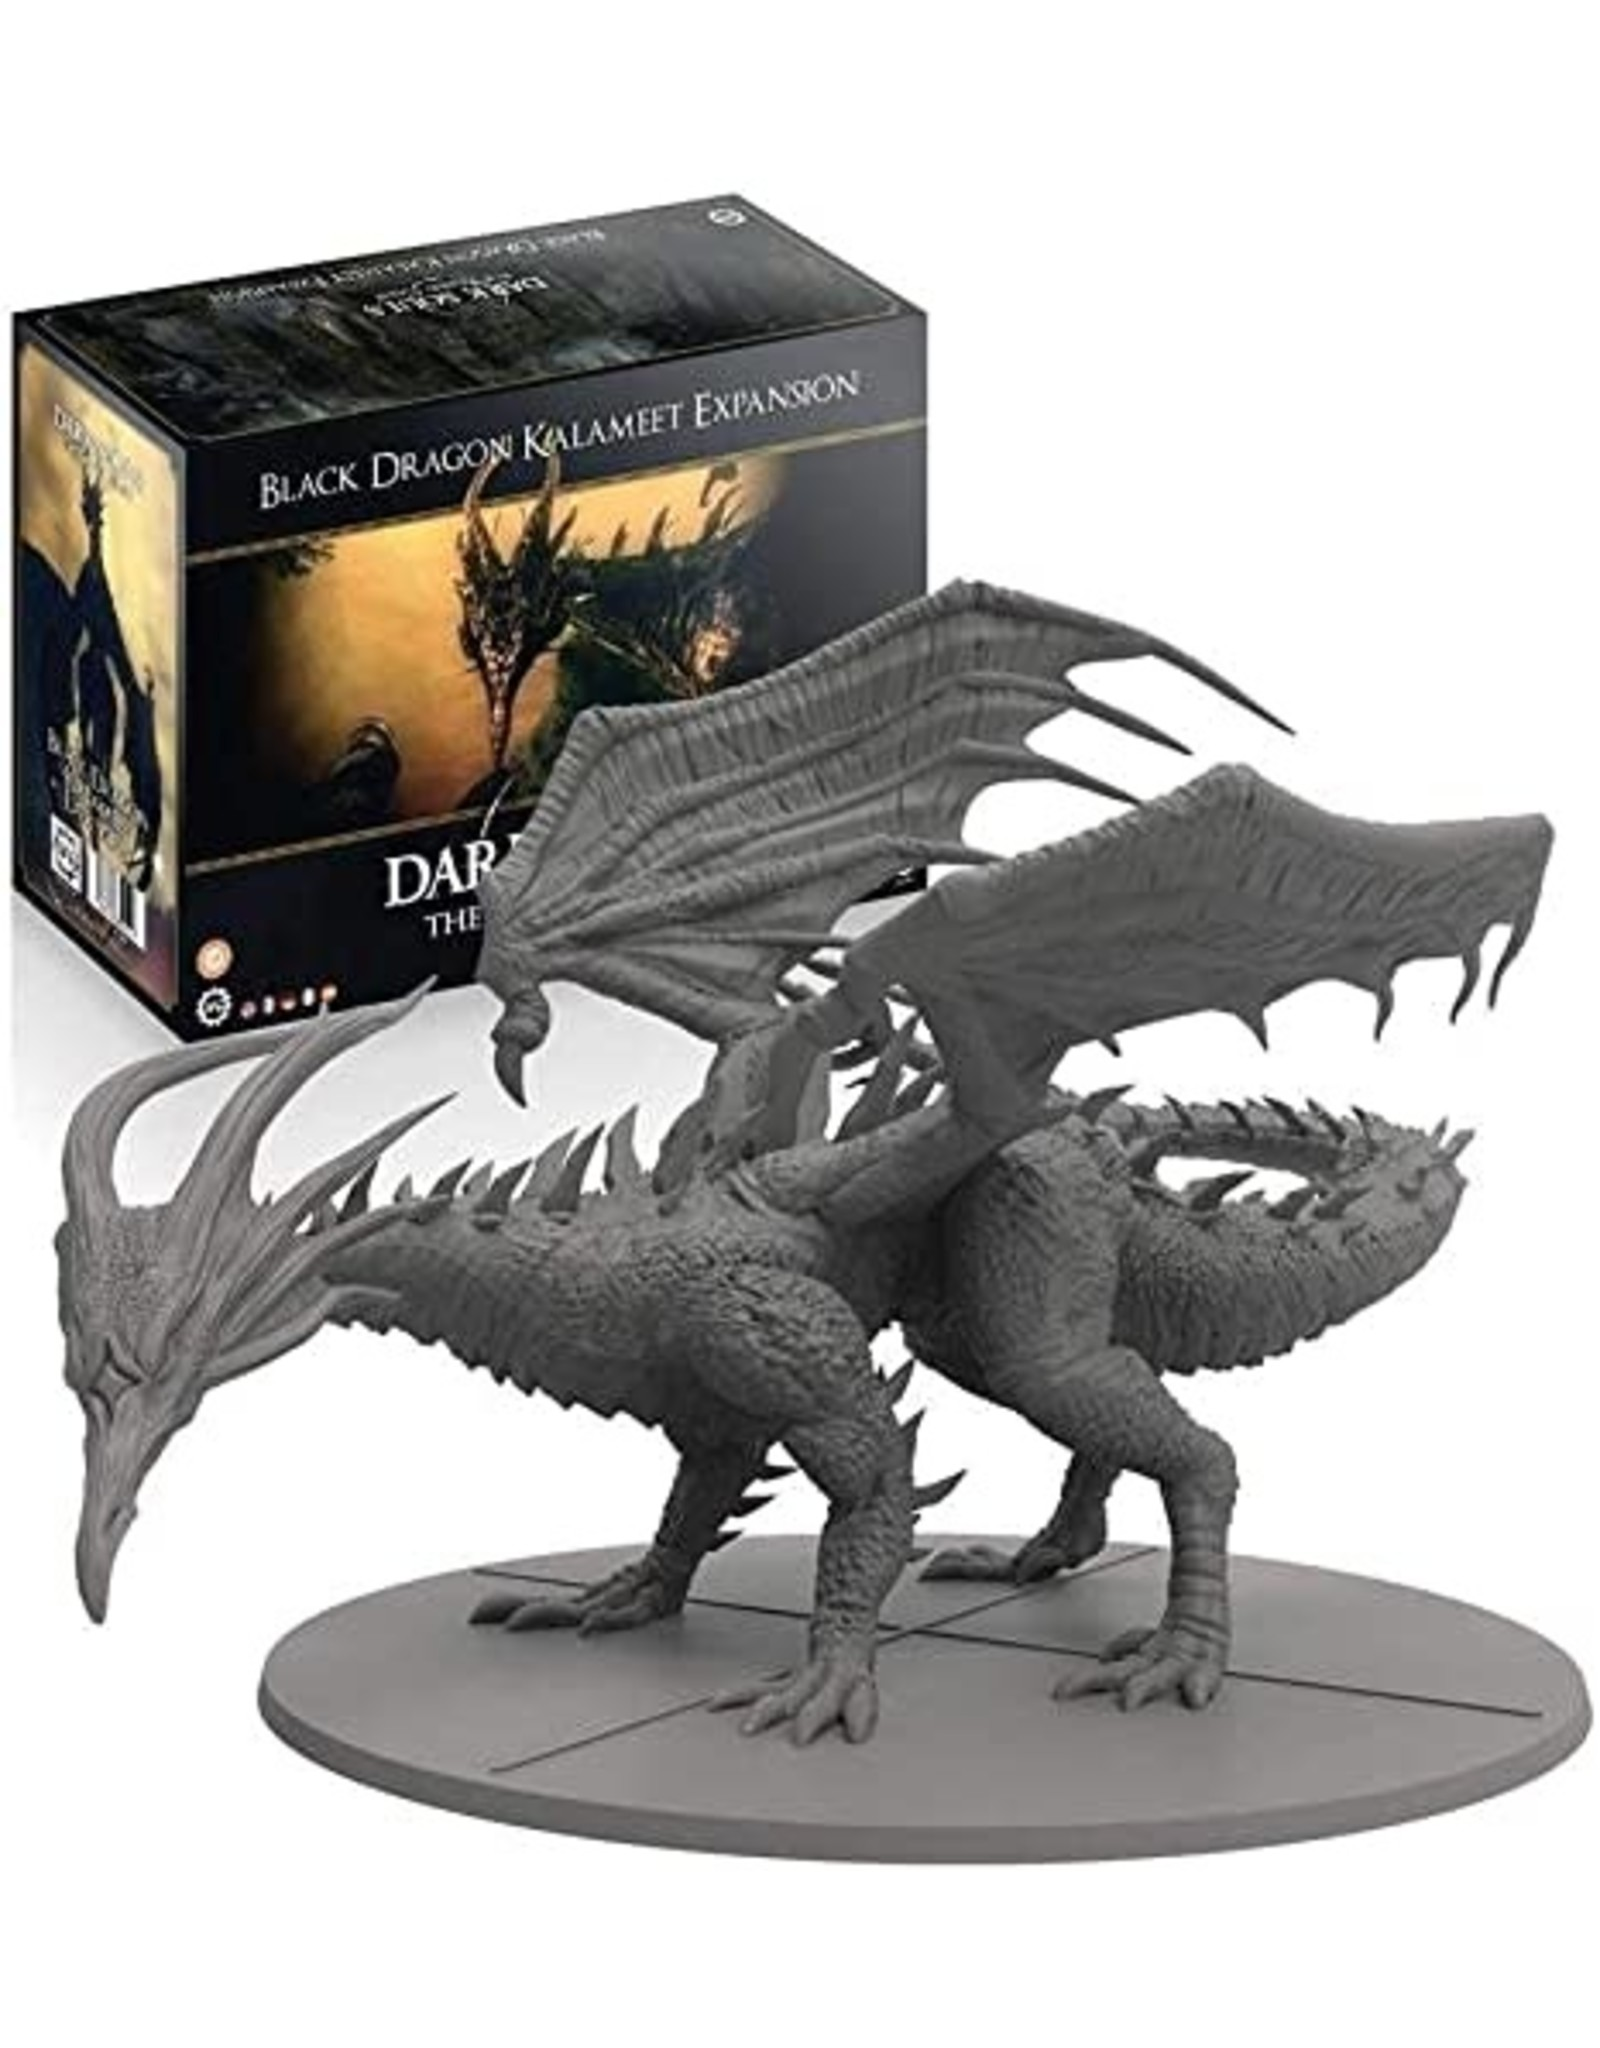 Dark Souls Expansion Black Dragon Kalameet